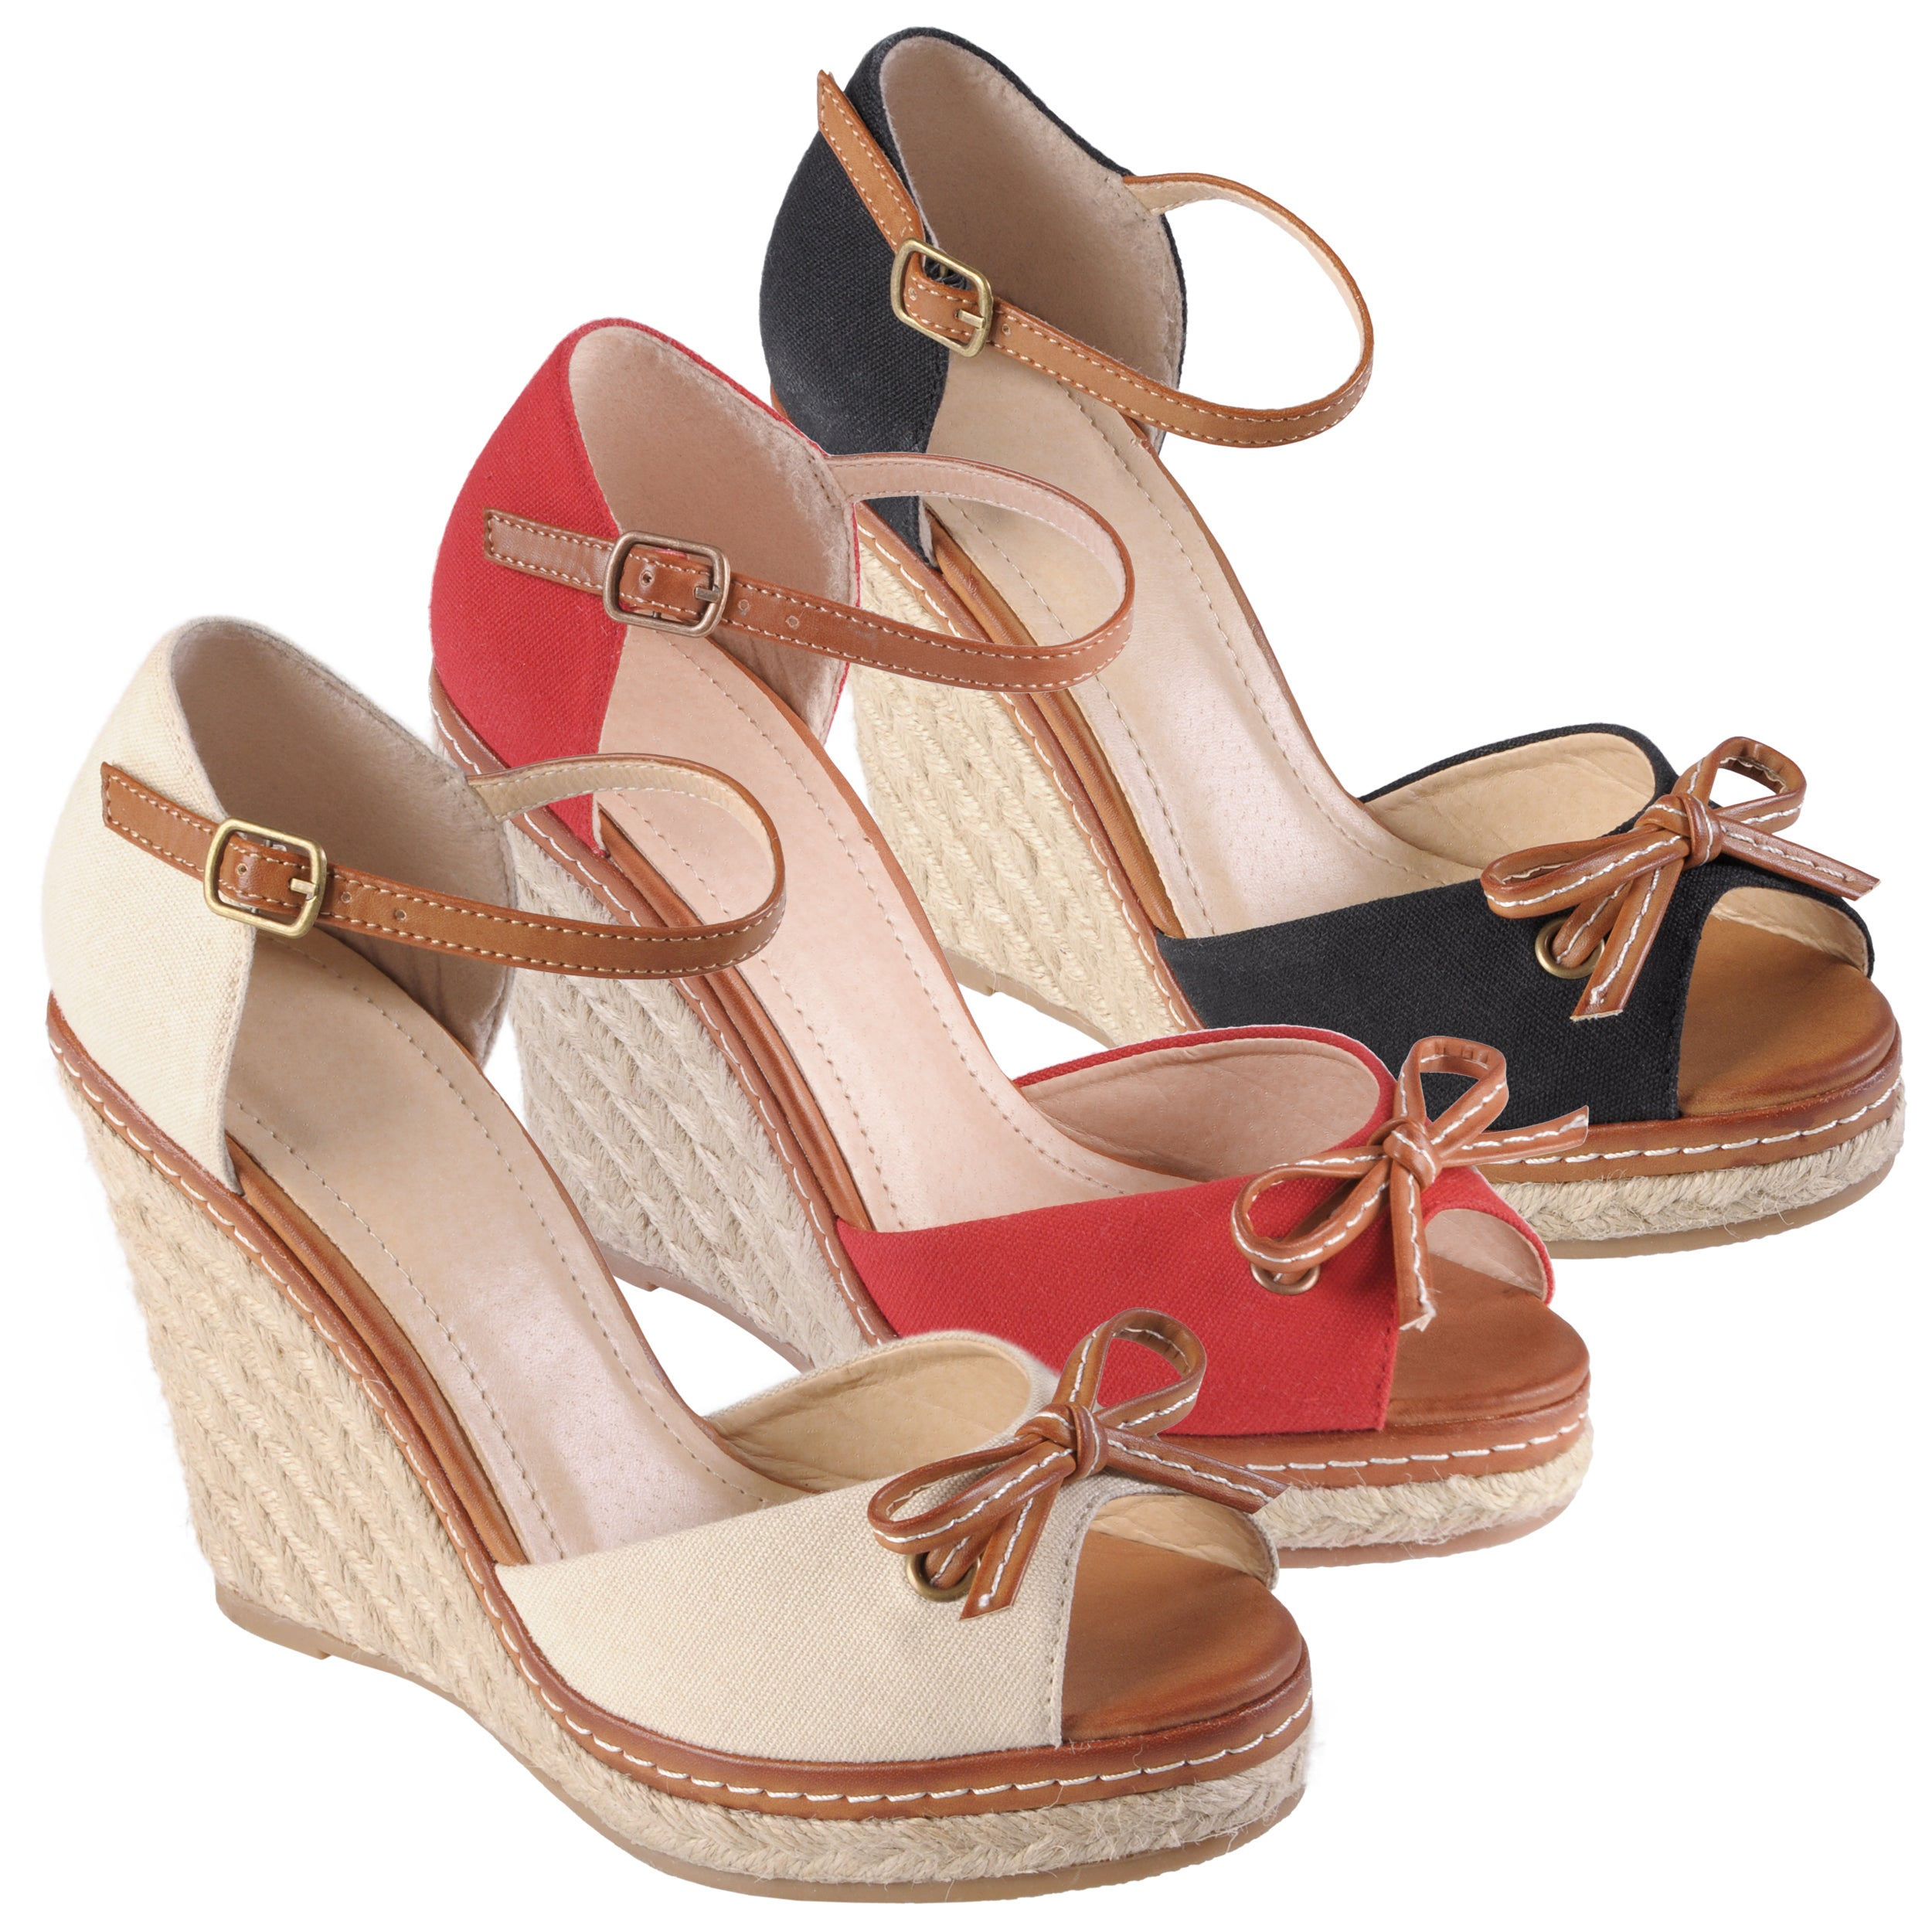 Journee Collection Women's 'Pinot-04' Bow Ankle Strap Wedges